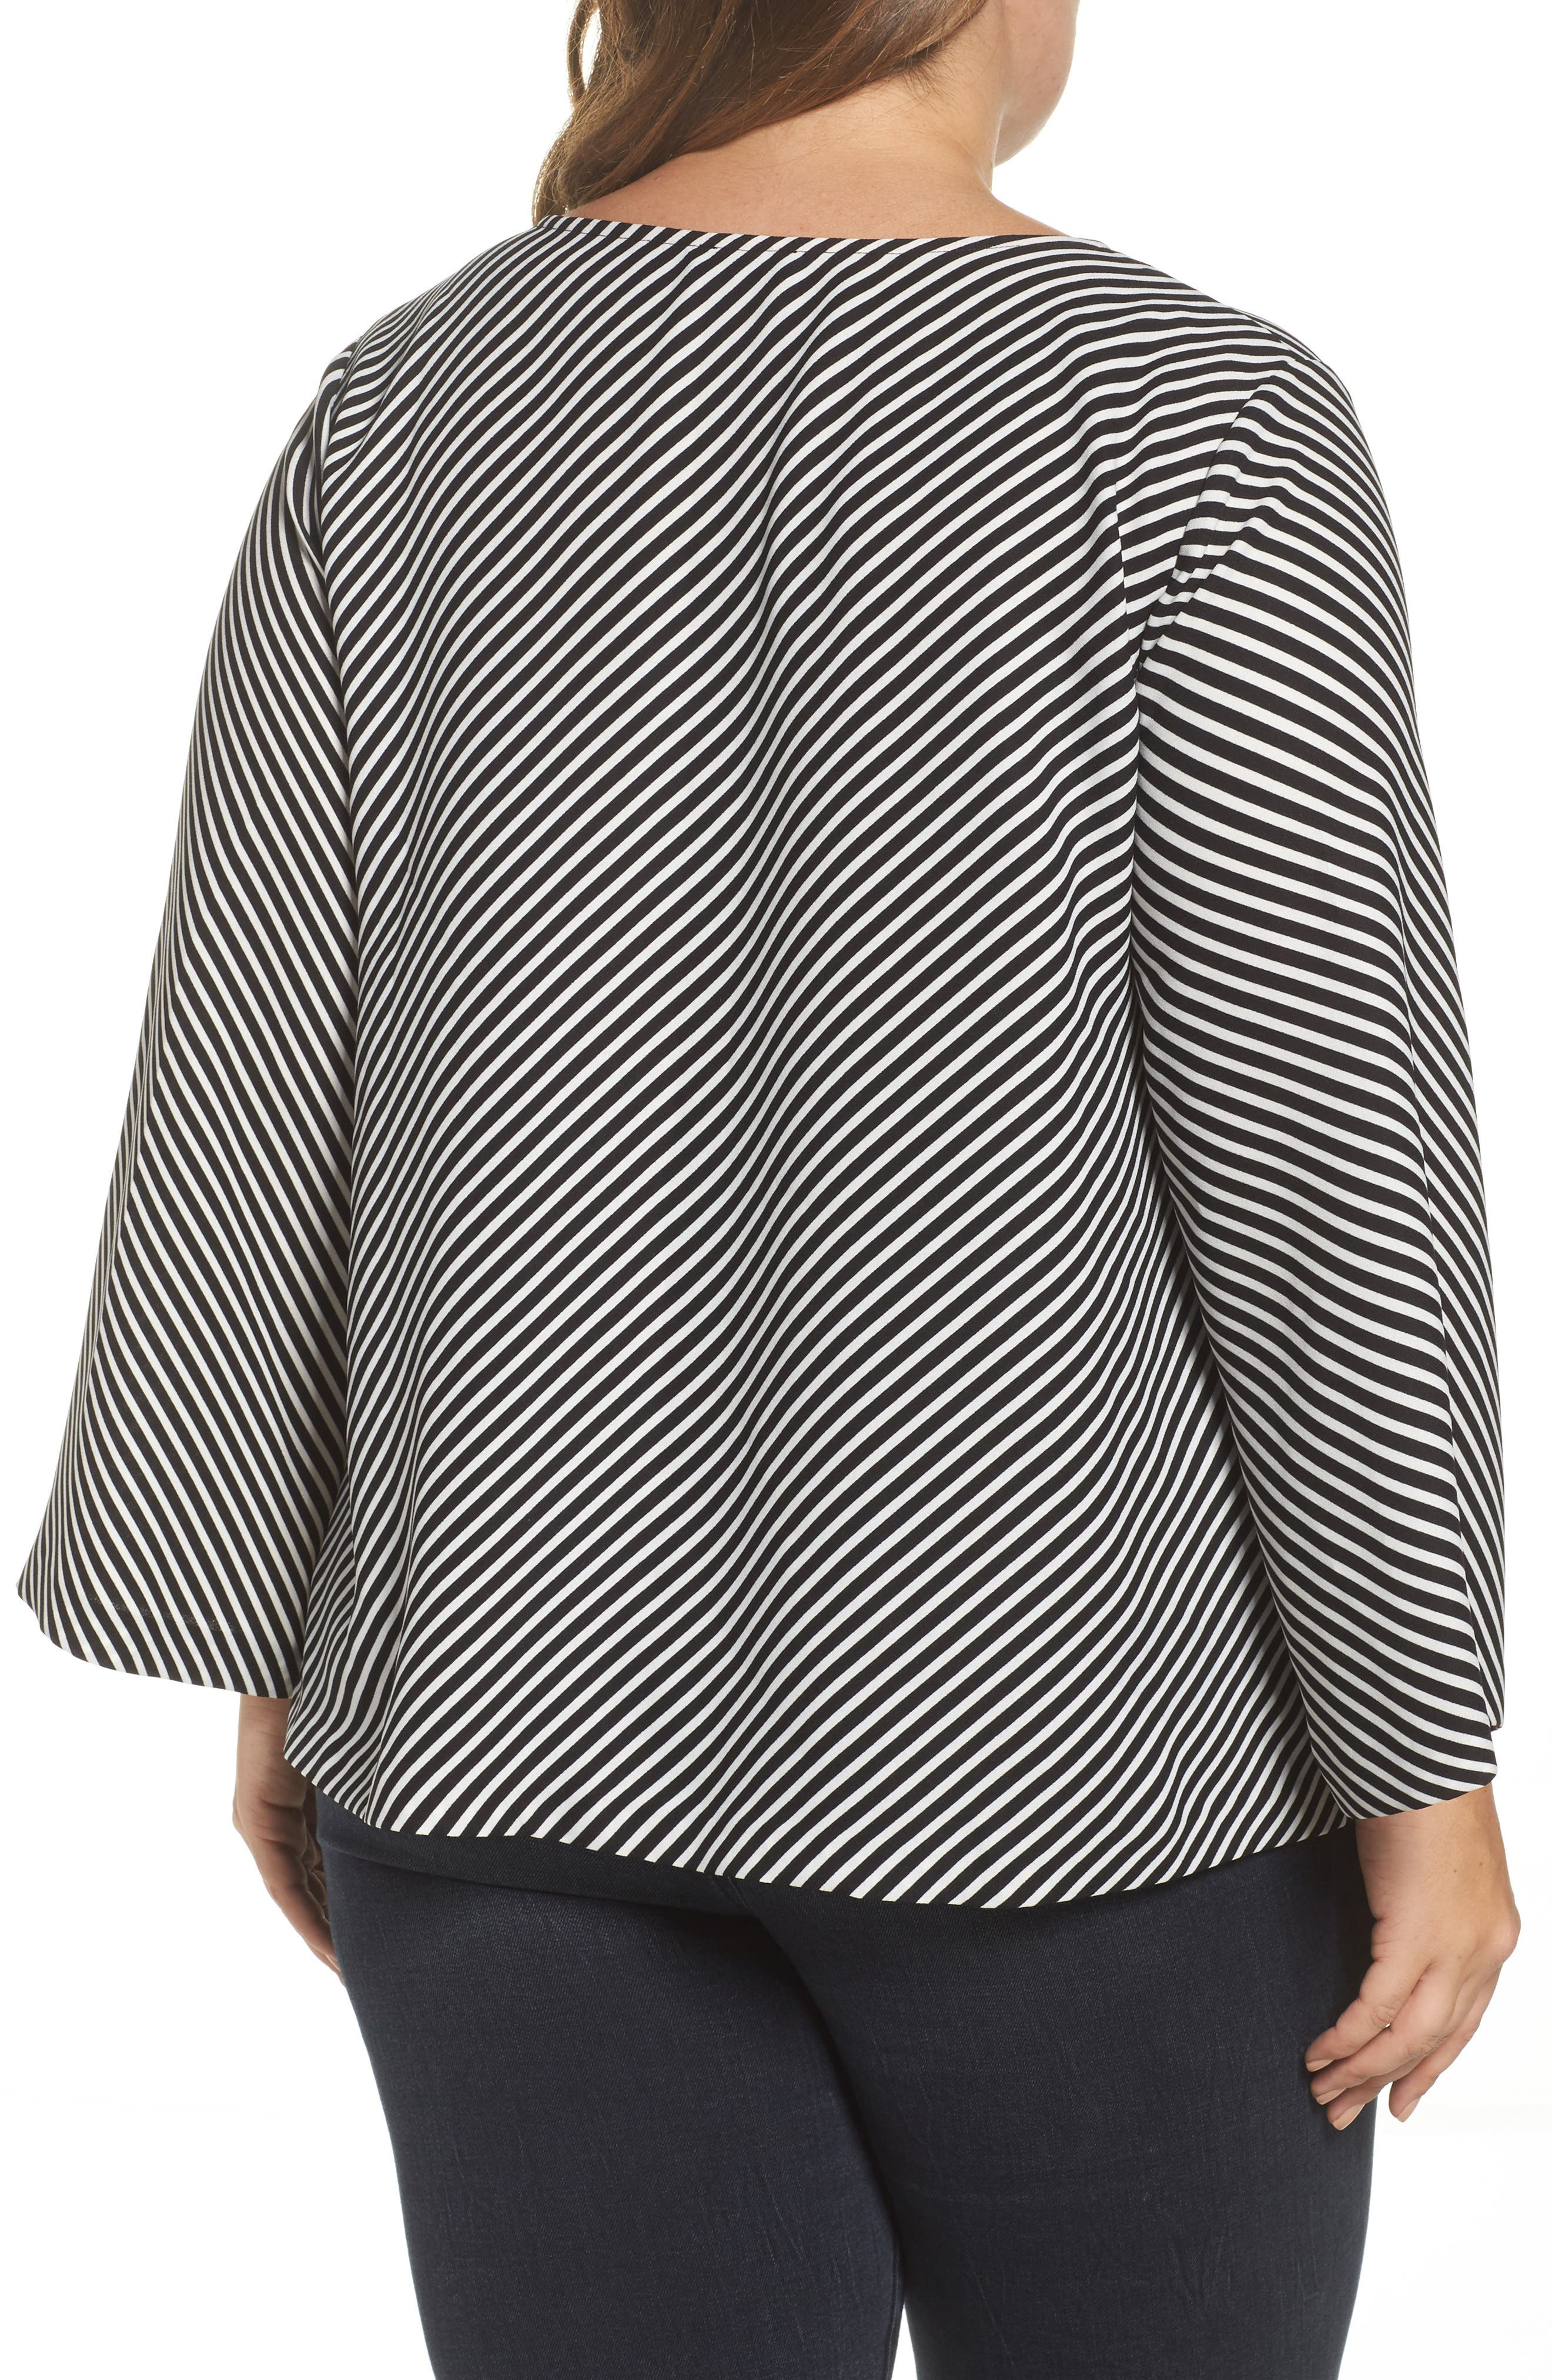 Alternate Image 2  - Vince Camuto Bell Sleeve Diagonal Stripe Blouse (Plus Size)